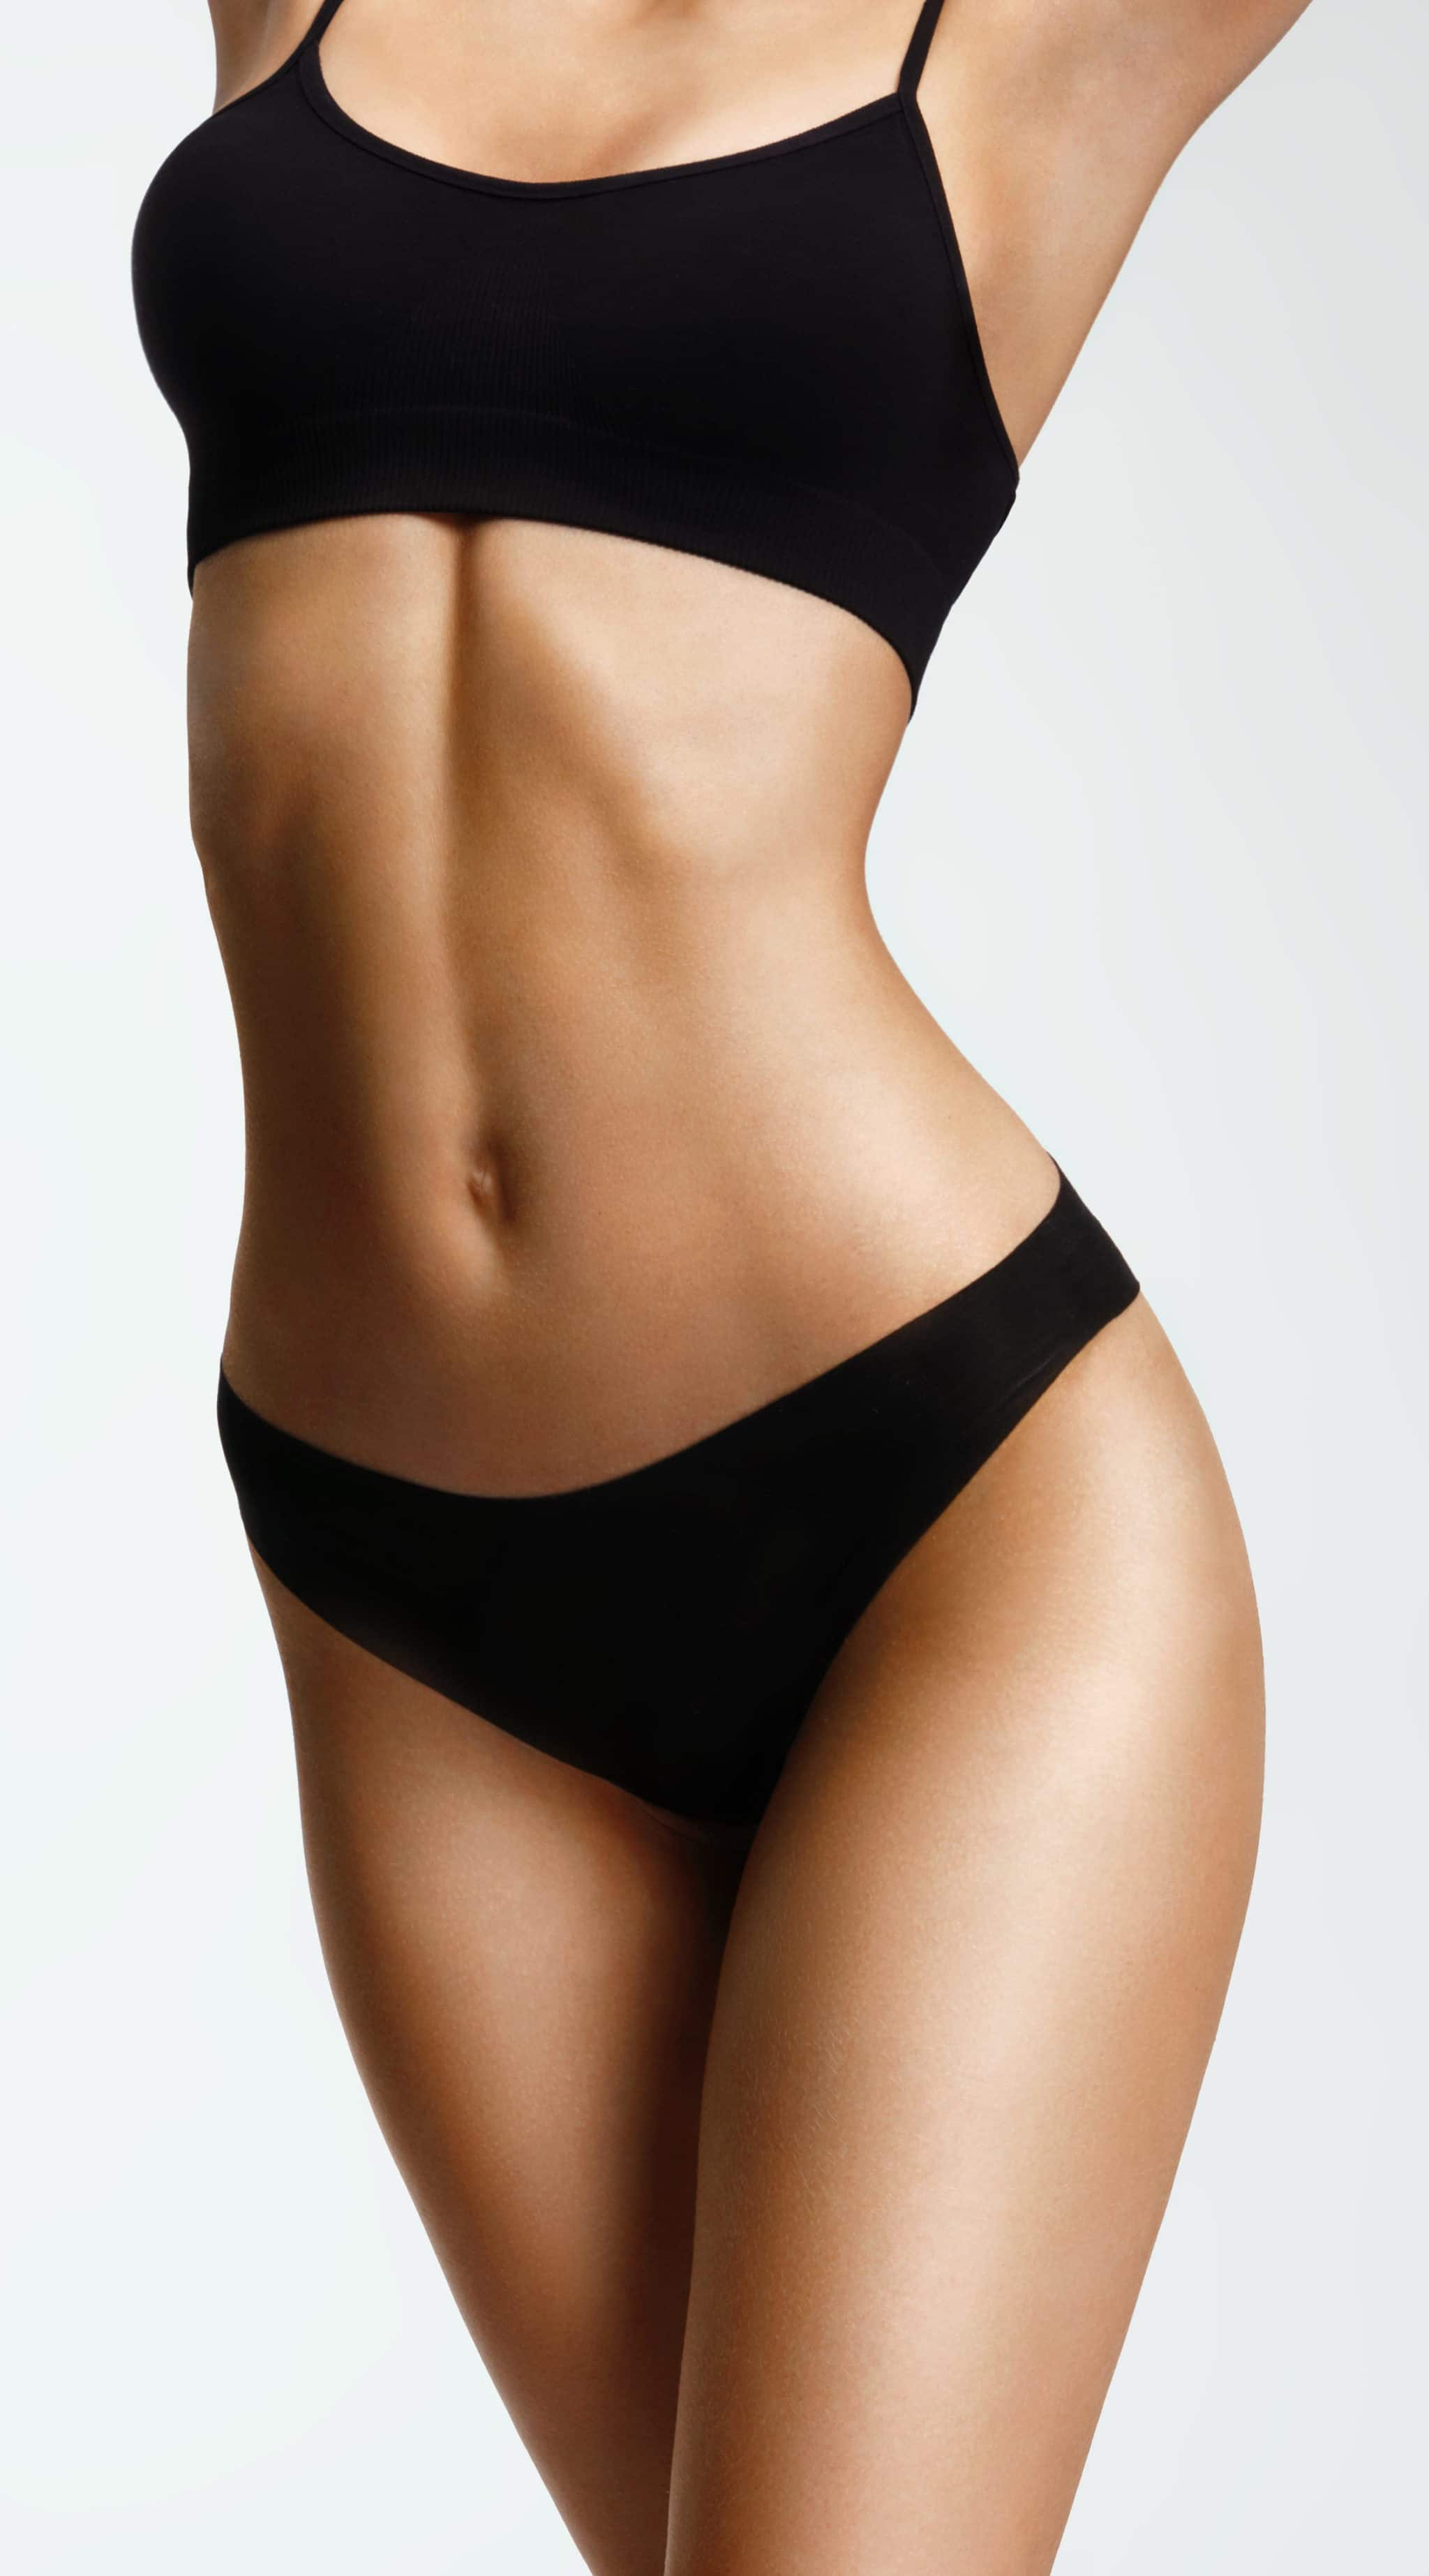 Liposuction Reno NV